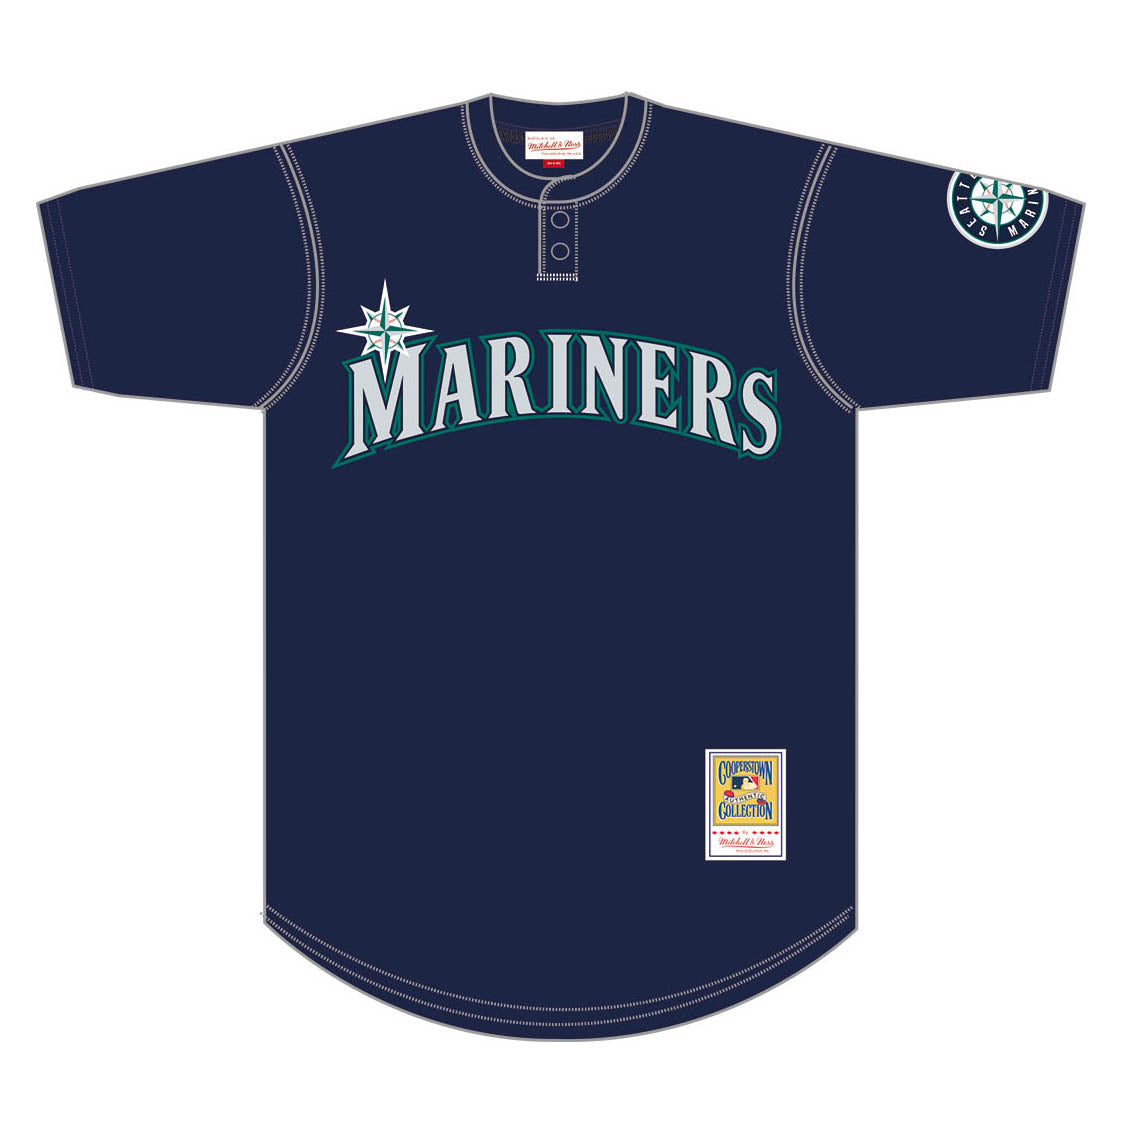 new products deac8 d6807 MITCHELL & NESS - AUTH MESH BP JERSEY 1995 MARINERS KEN GRIFFEY JR - Blue